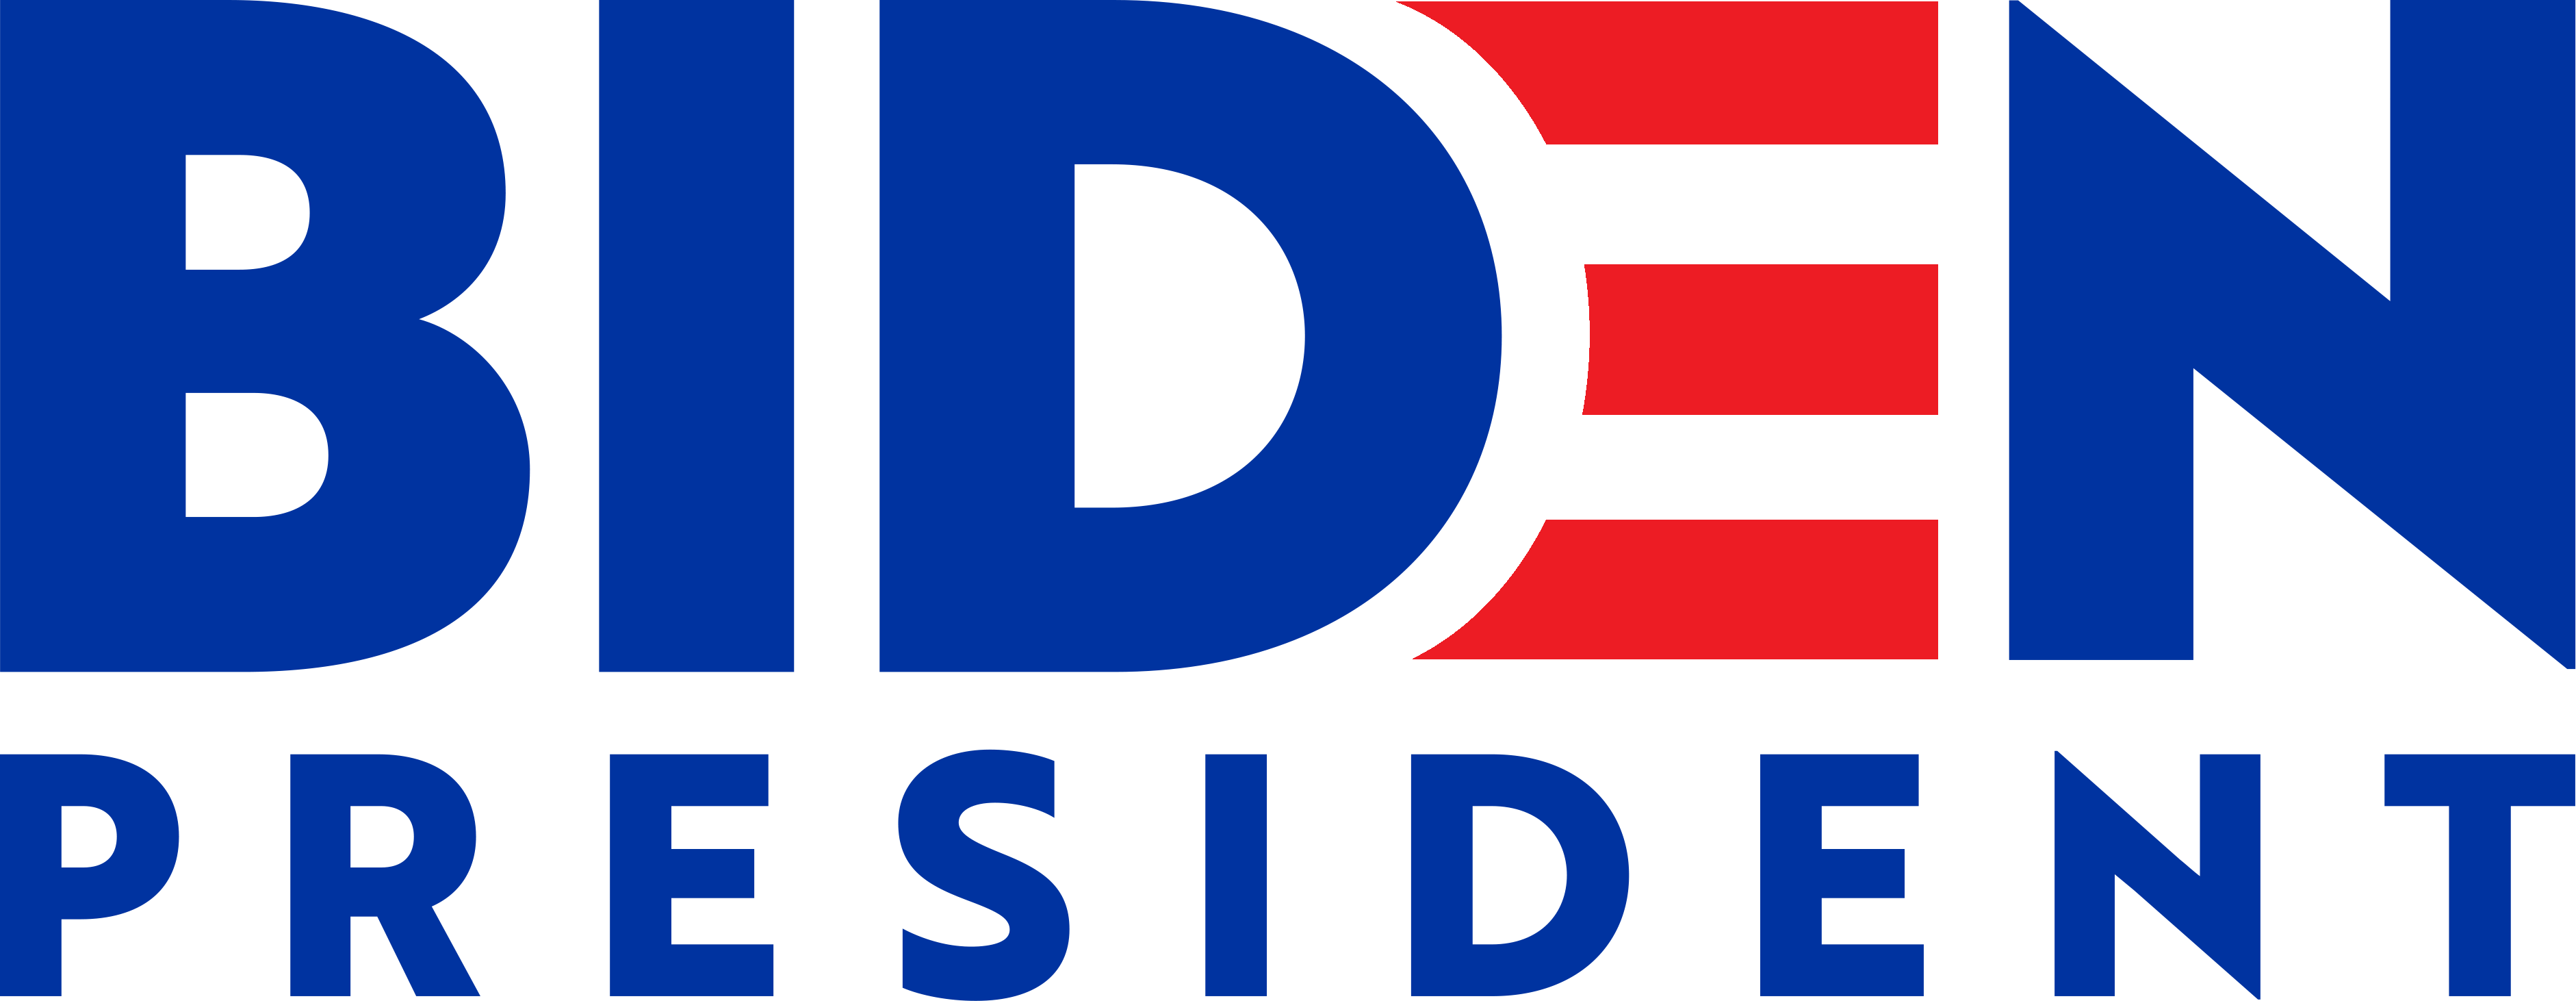 Biden for President logo